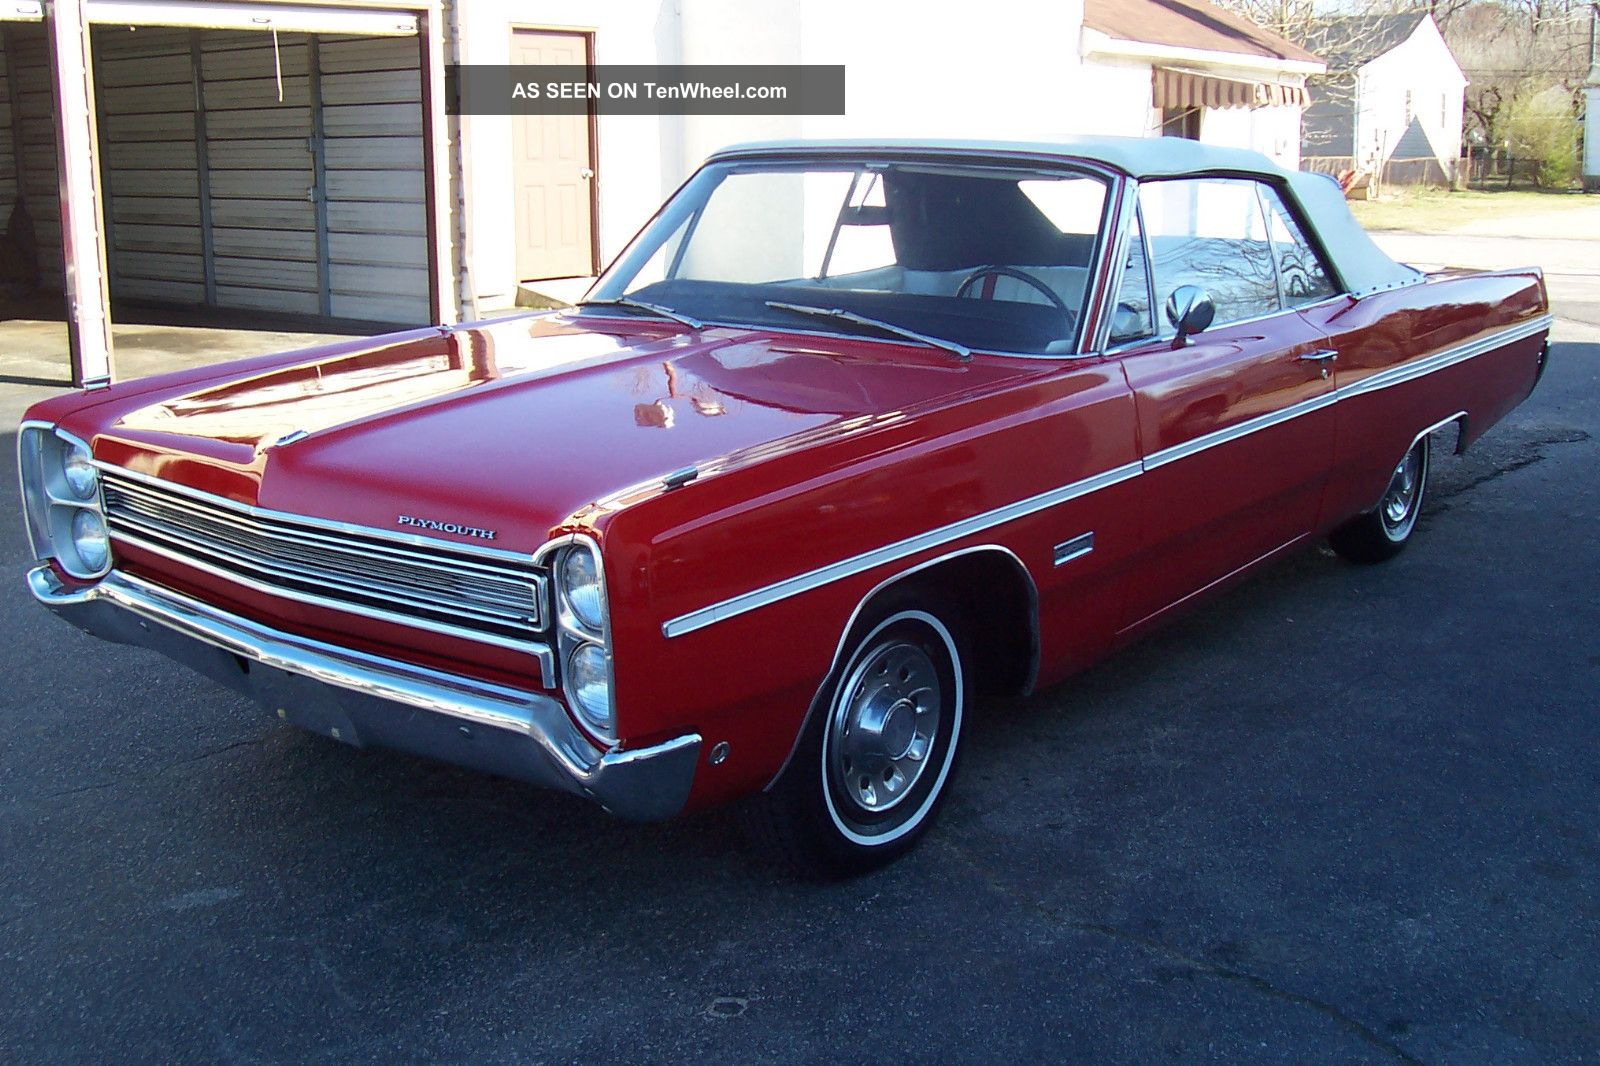 1968 Plymouth Fury Iii Convertible